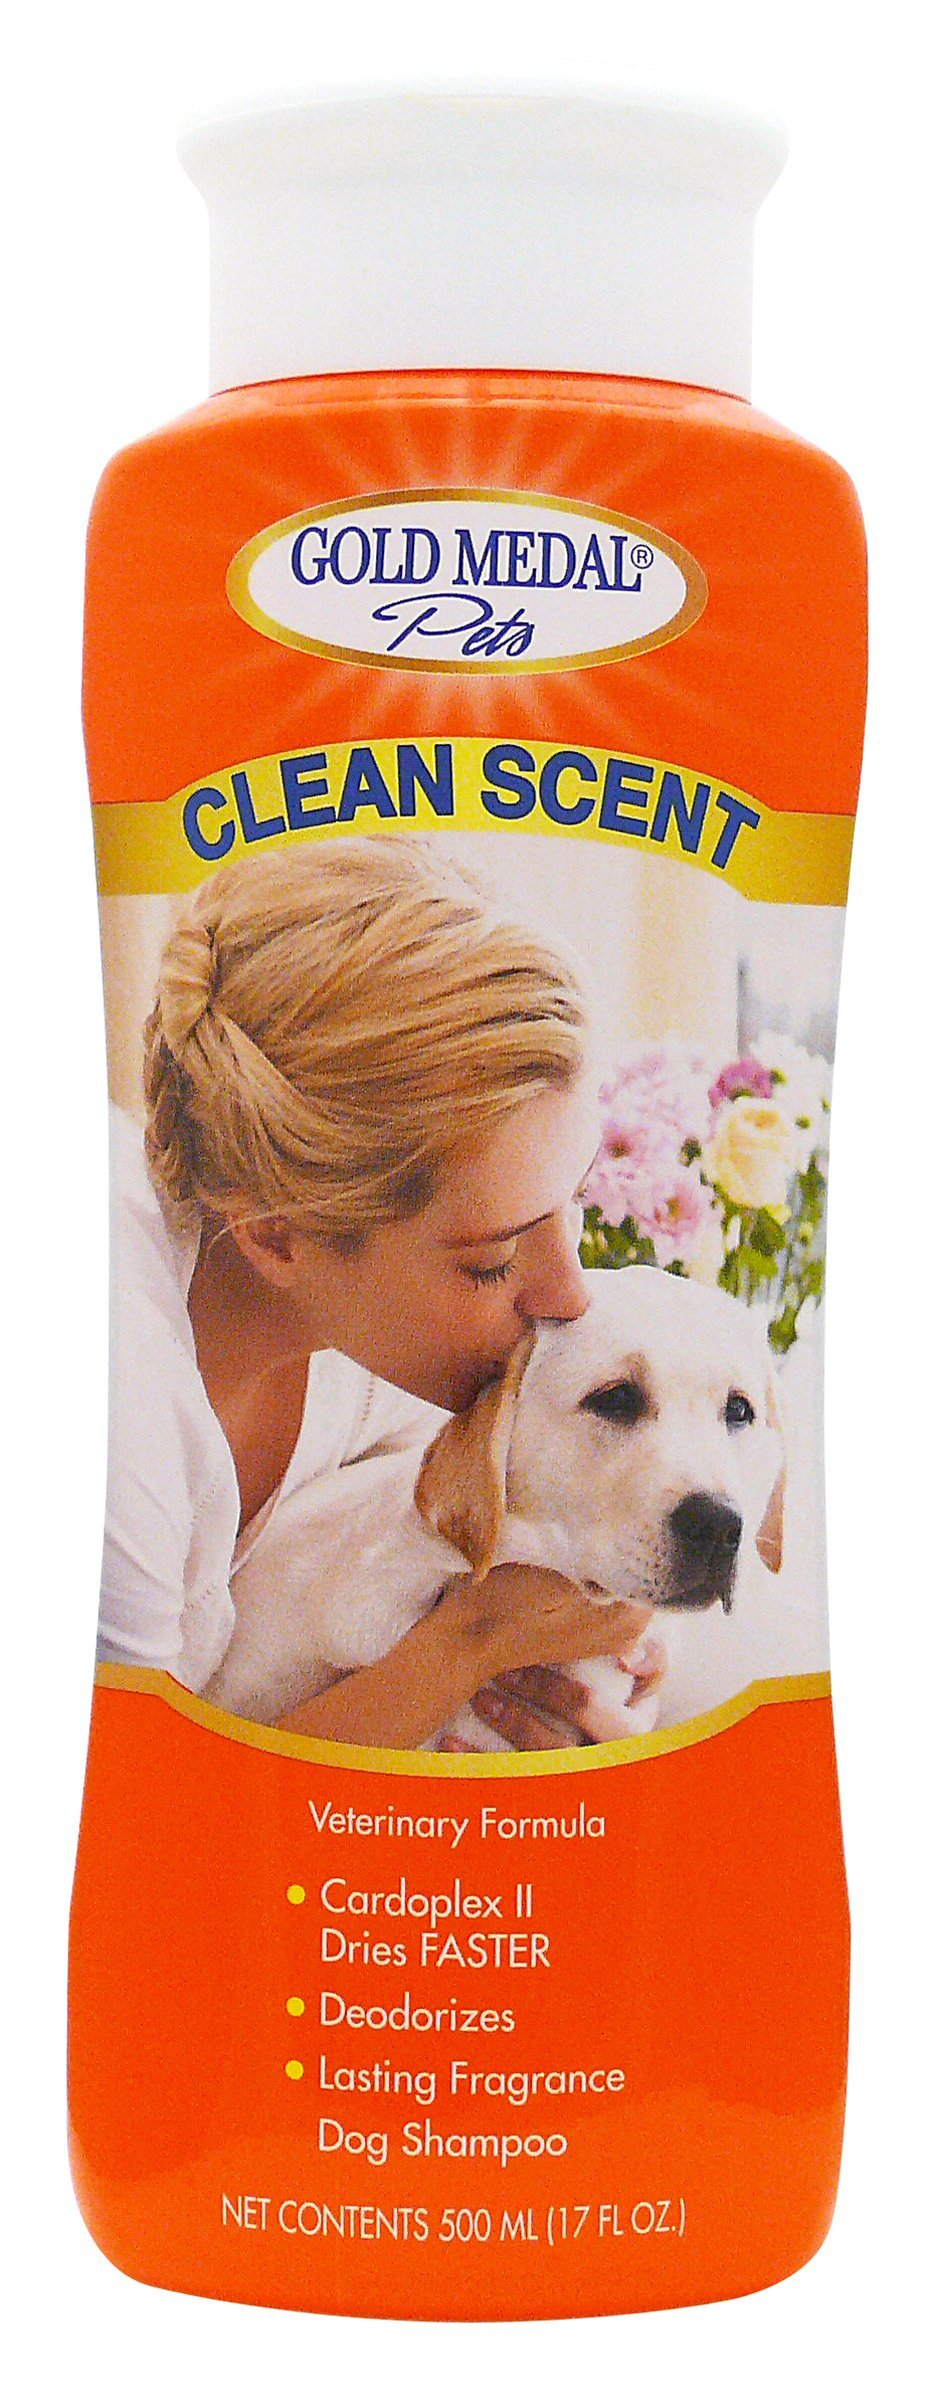 Gold Medal Pets Clean Scent Shampoo with Cardoplex for Dogs, 17 oz. by GOLD MEDAL PETS